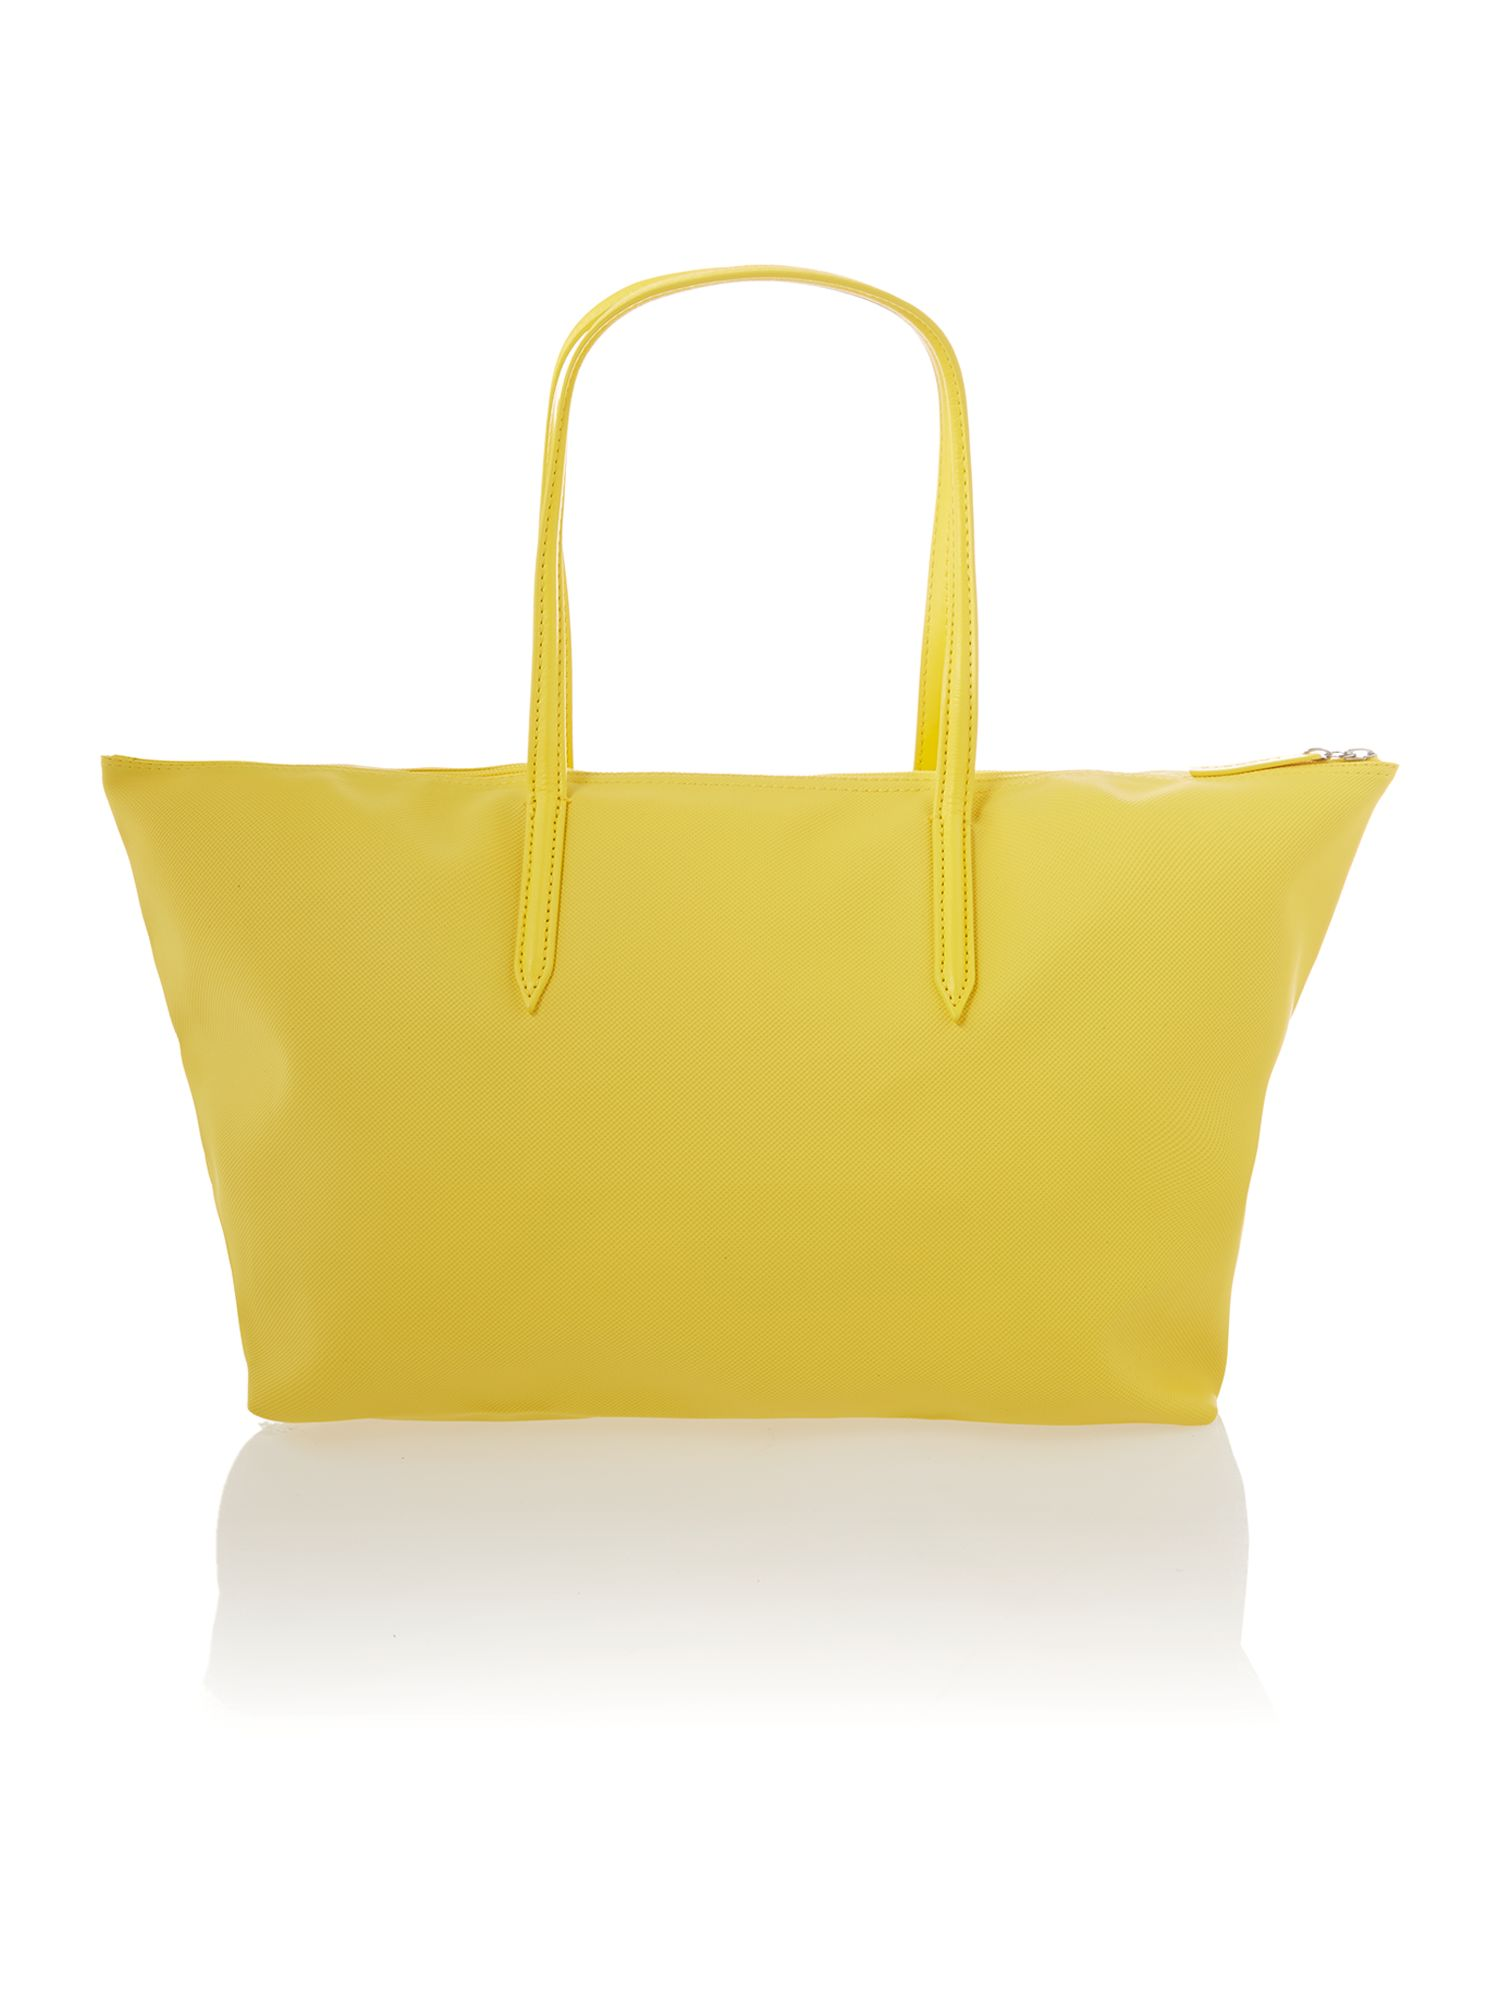 Yellow tote bag